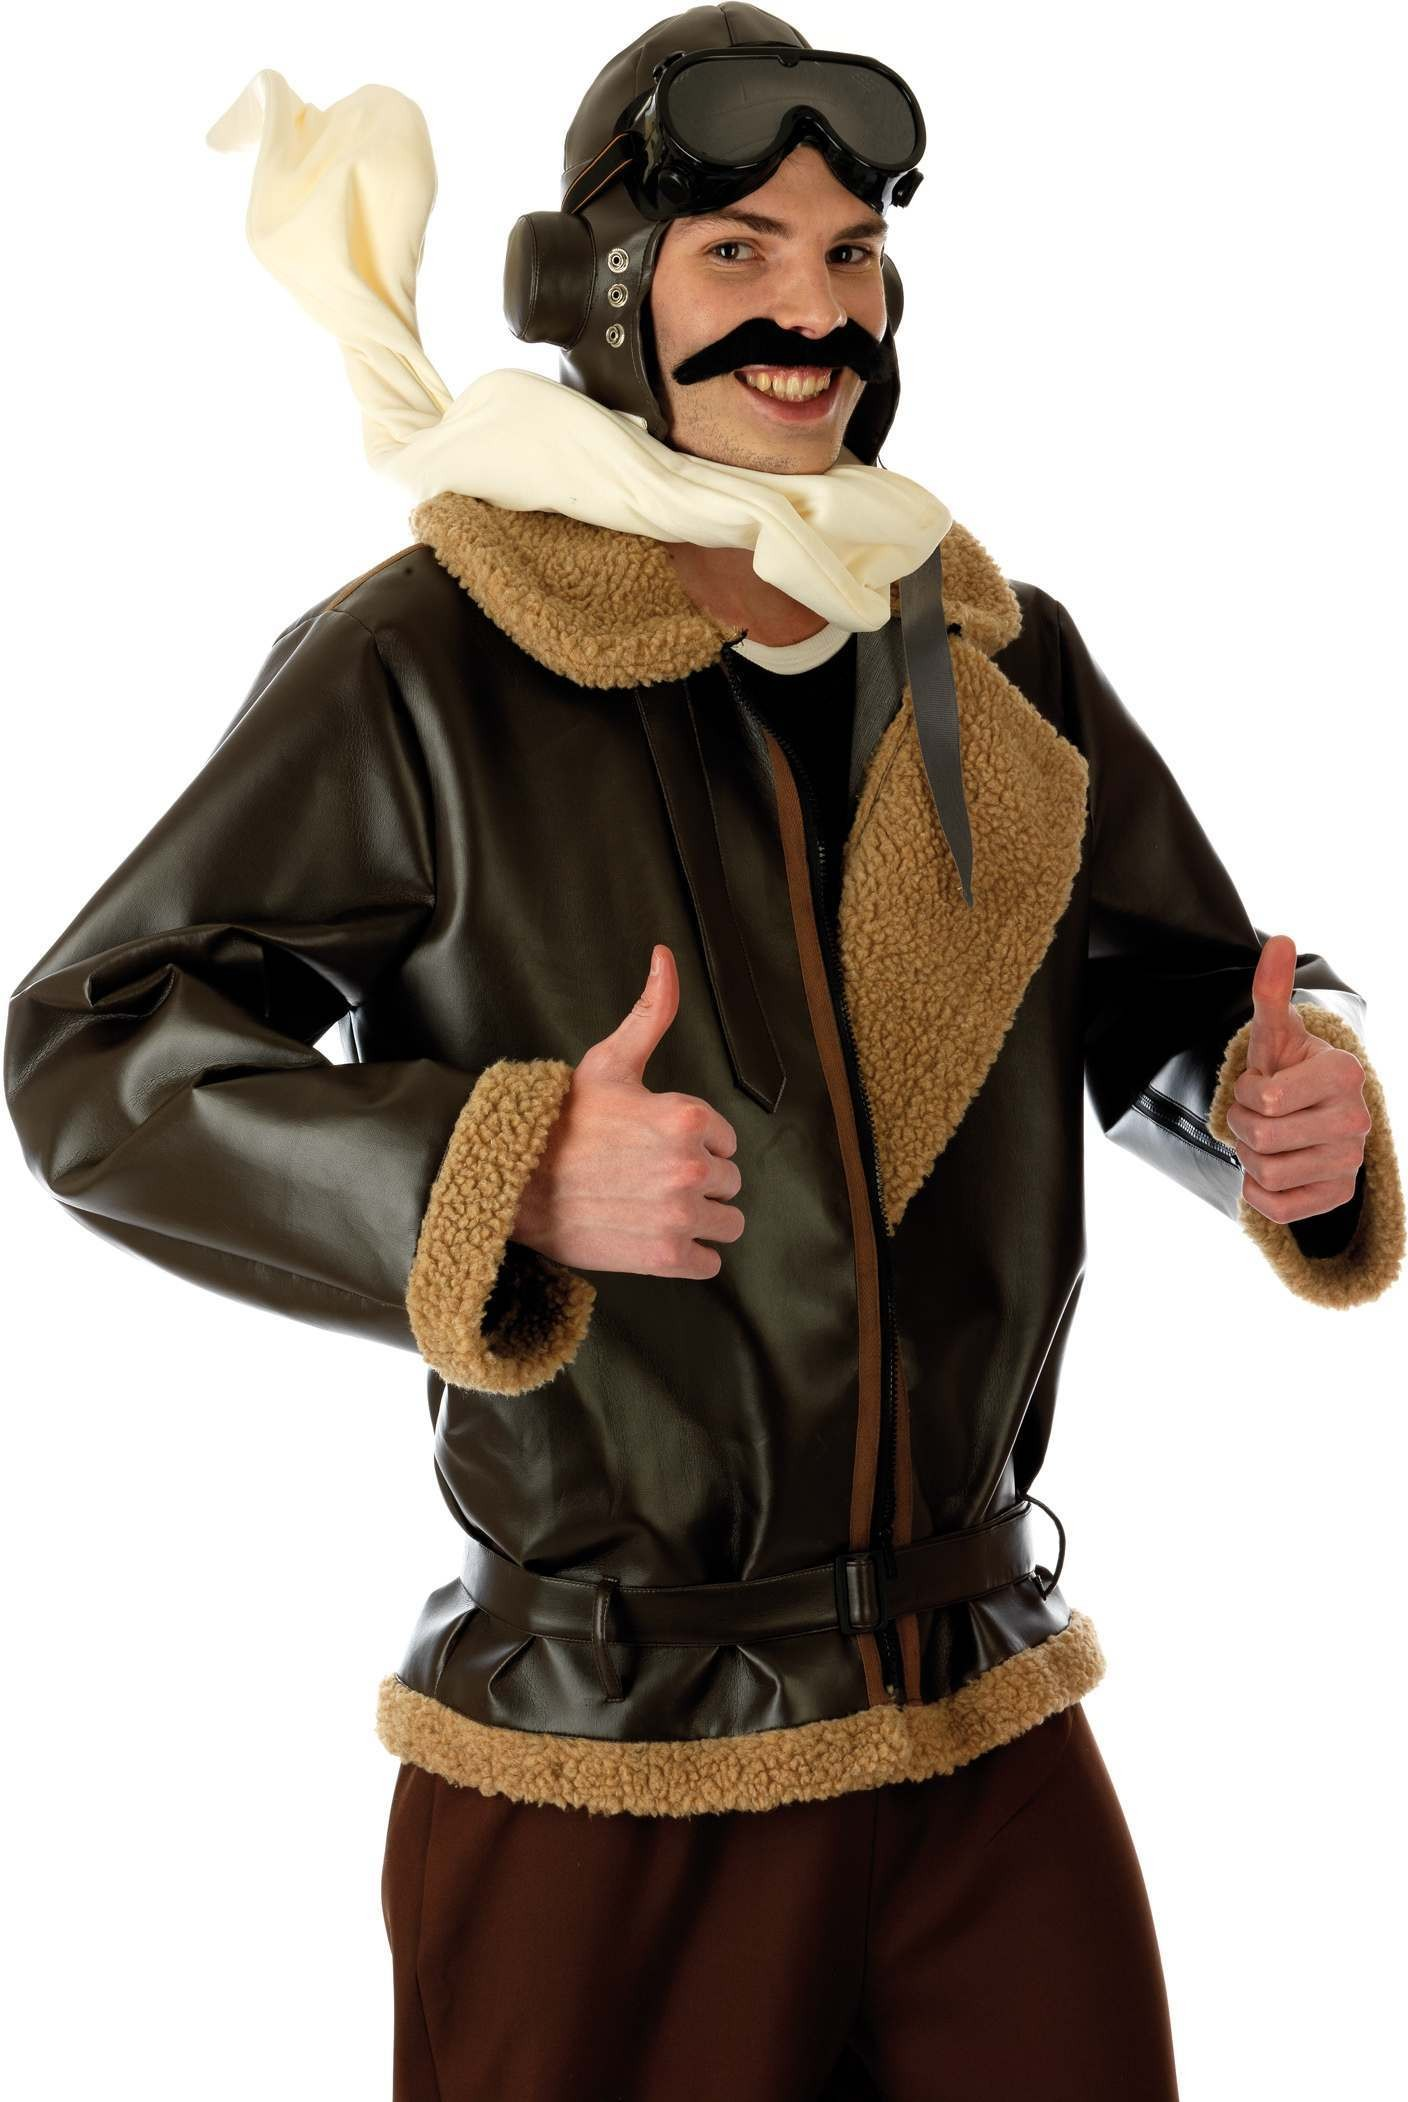 War Time Fighter Pilot Fancy Dress Costume Mens (Pilot/Air)